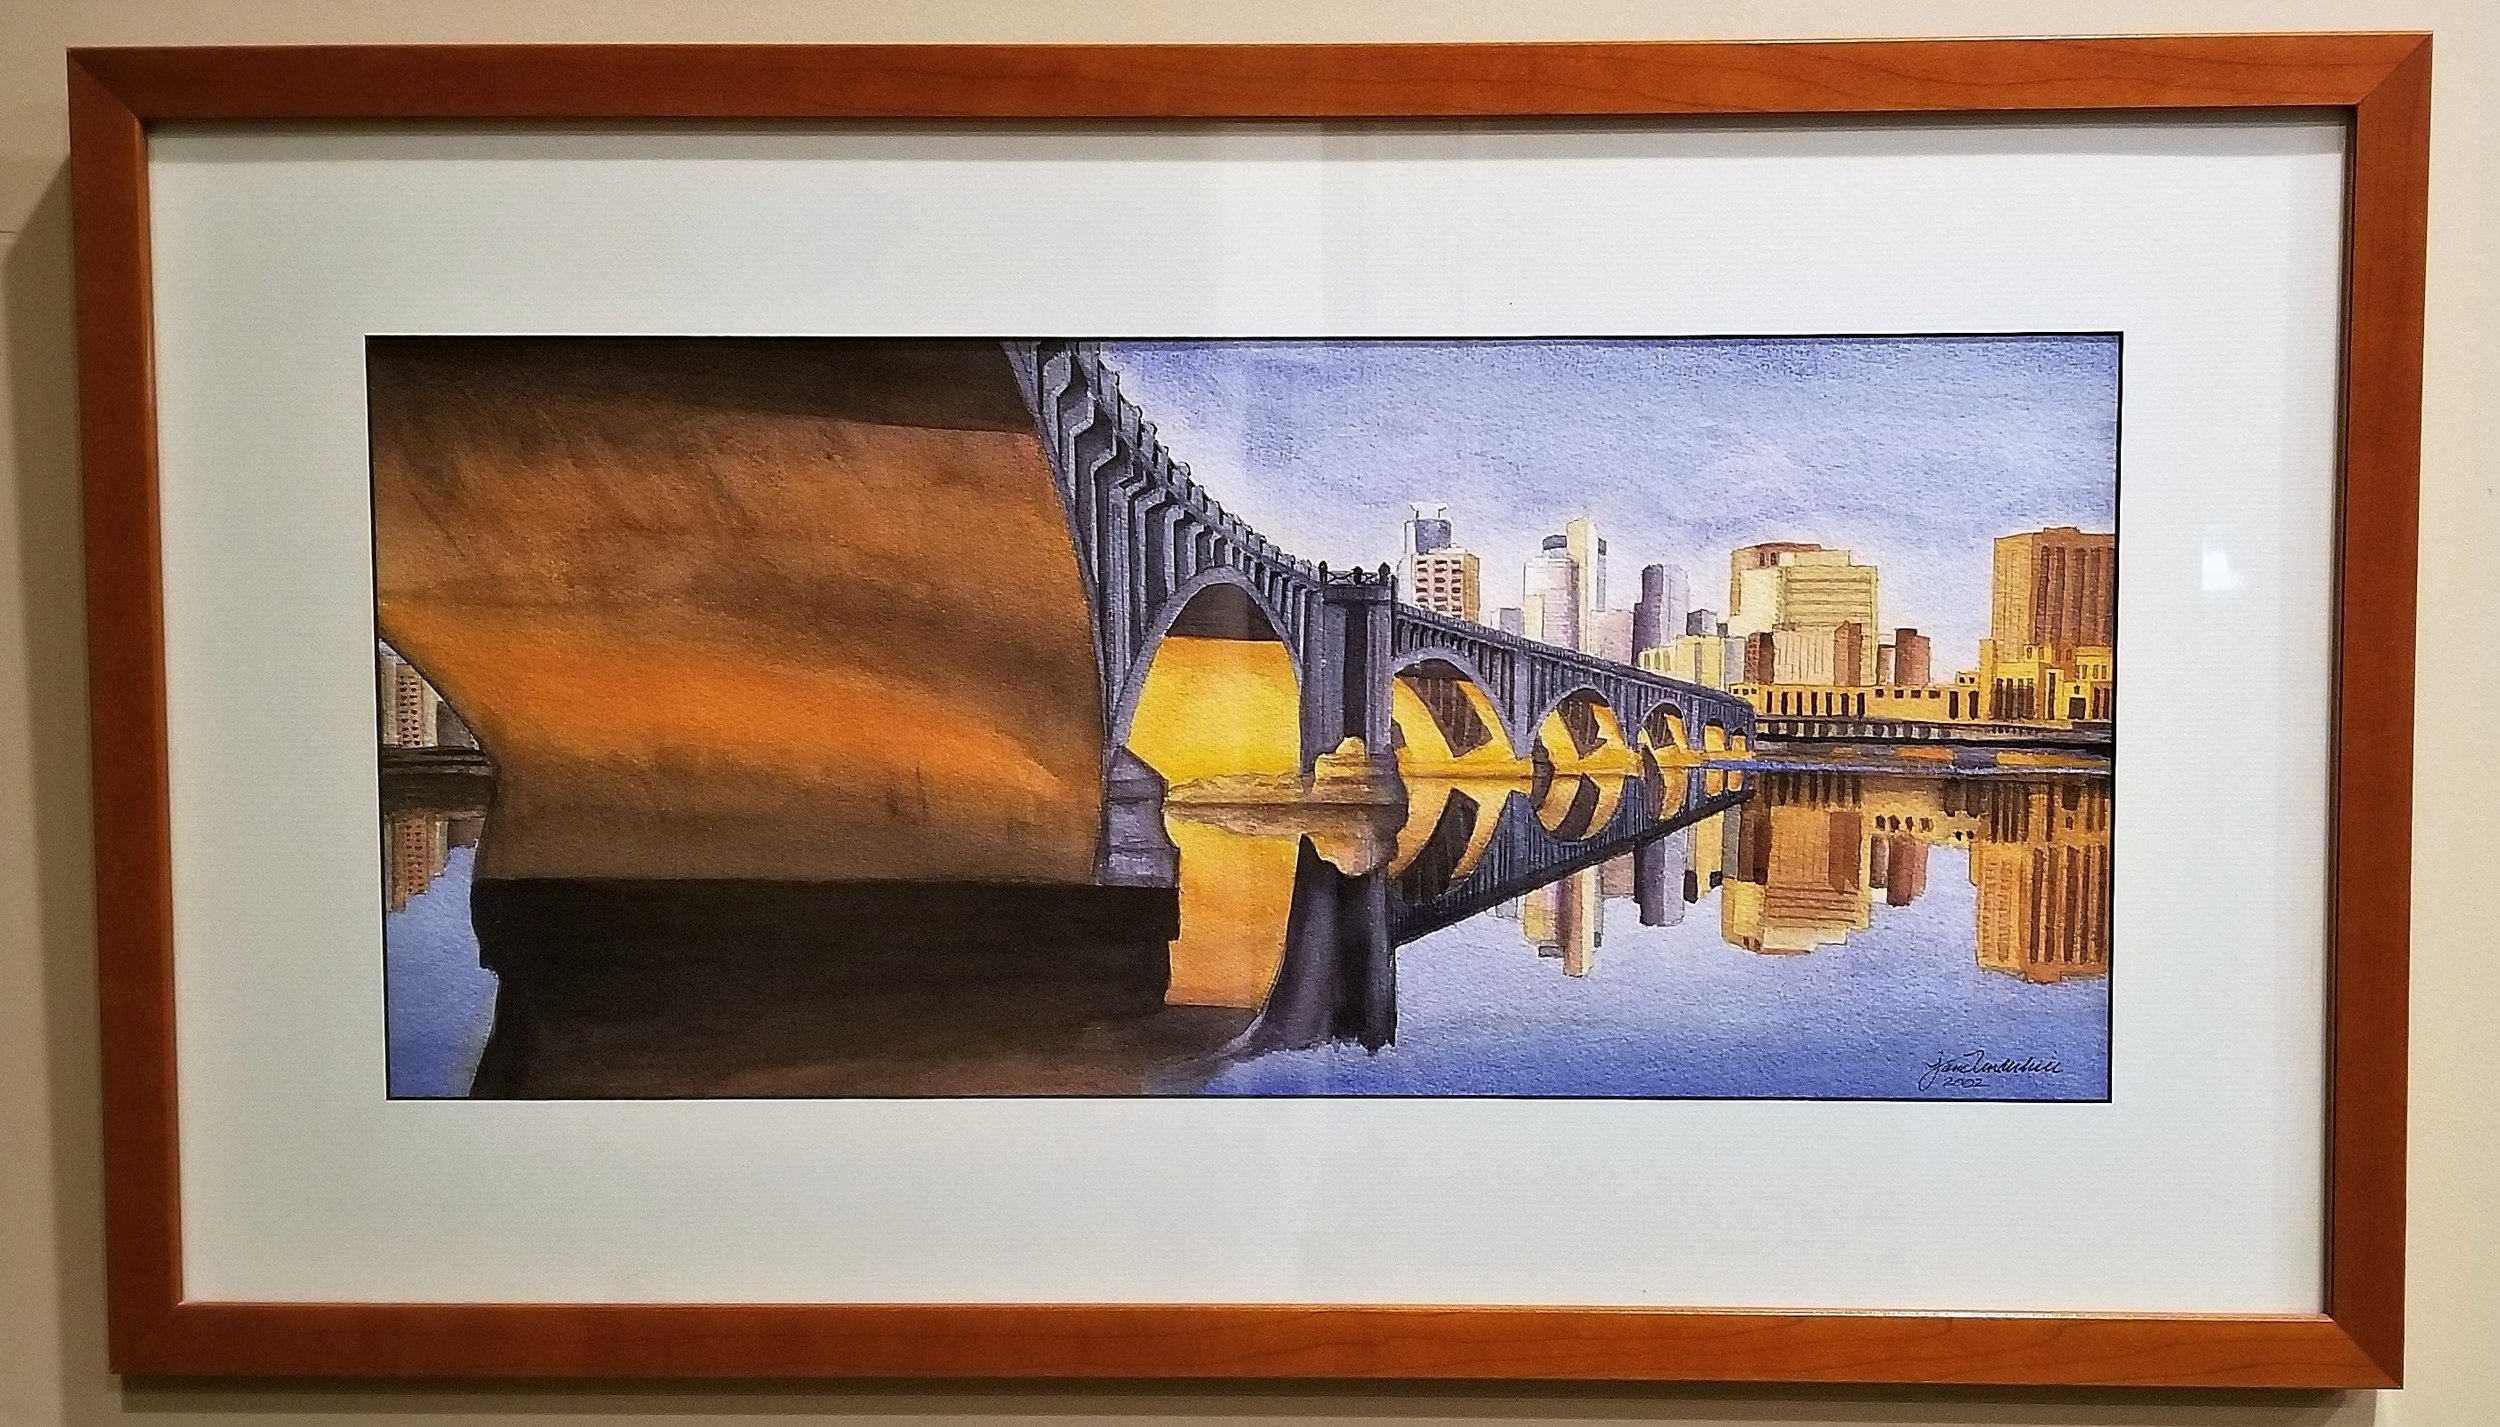 This painting of a famous bridge in the Twin Cities won her a 1st place prize!